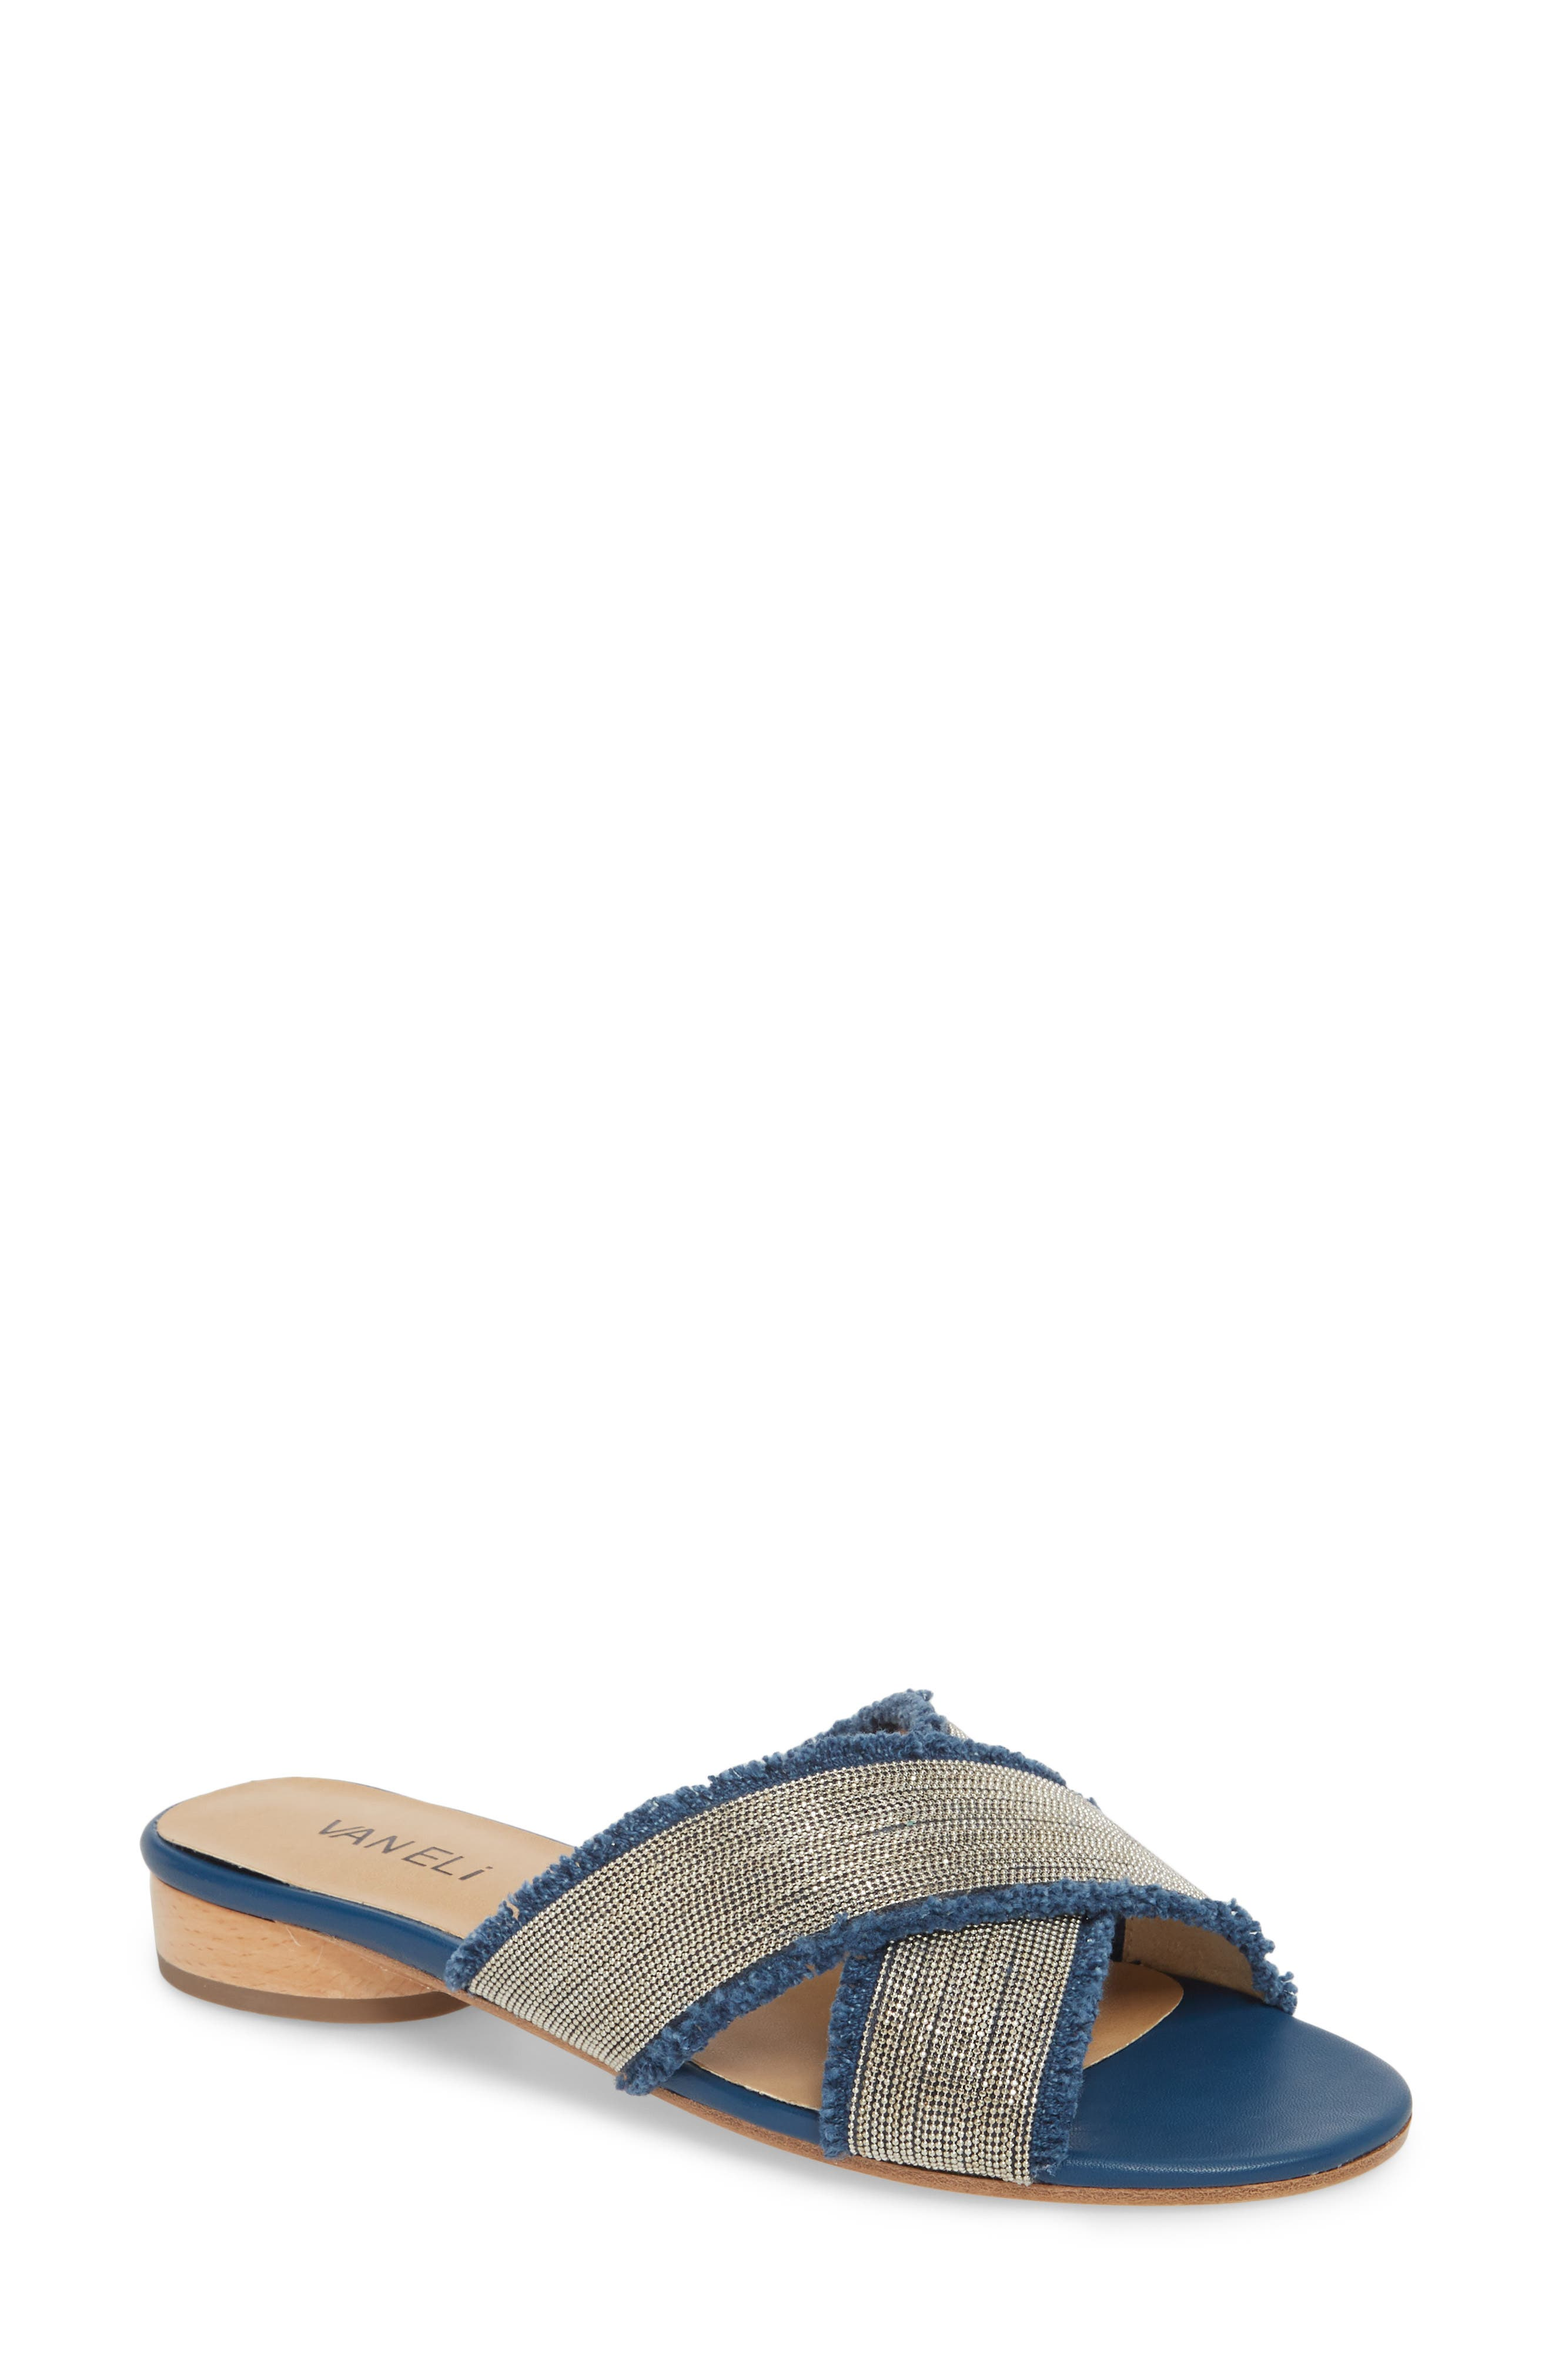 Vaneli Baret Embellished Cross Strap Slide Sandal, Blue